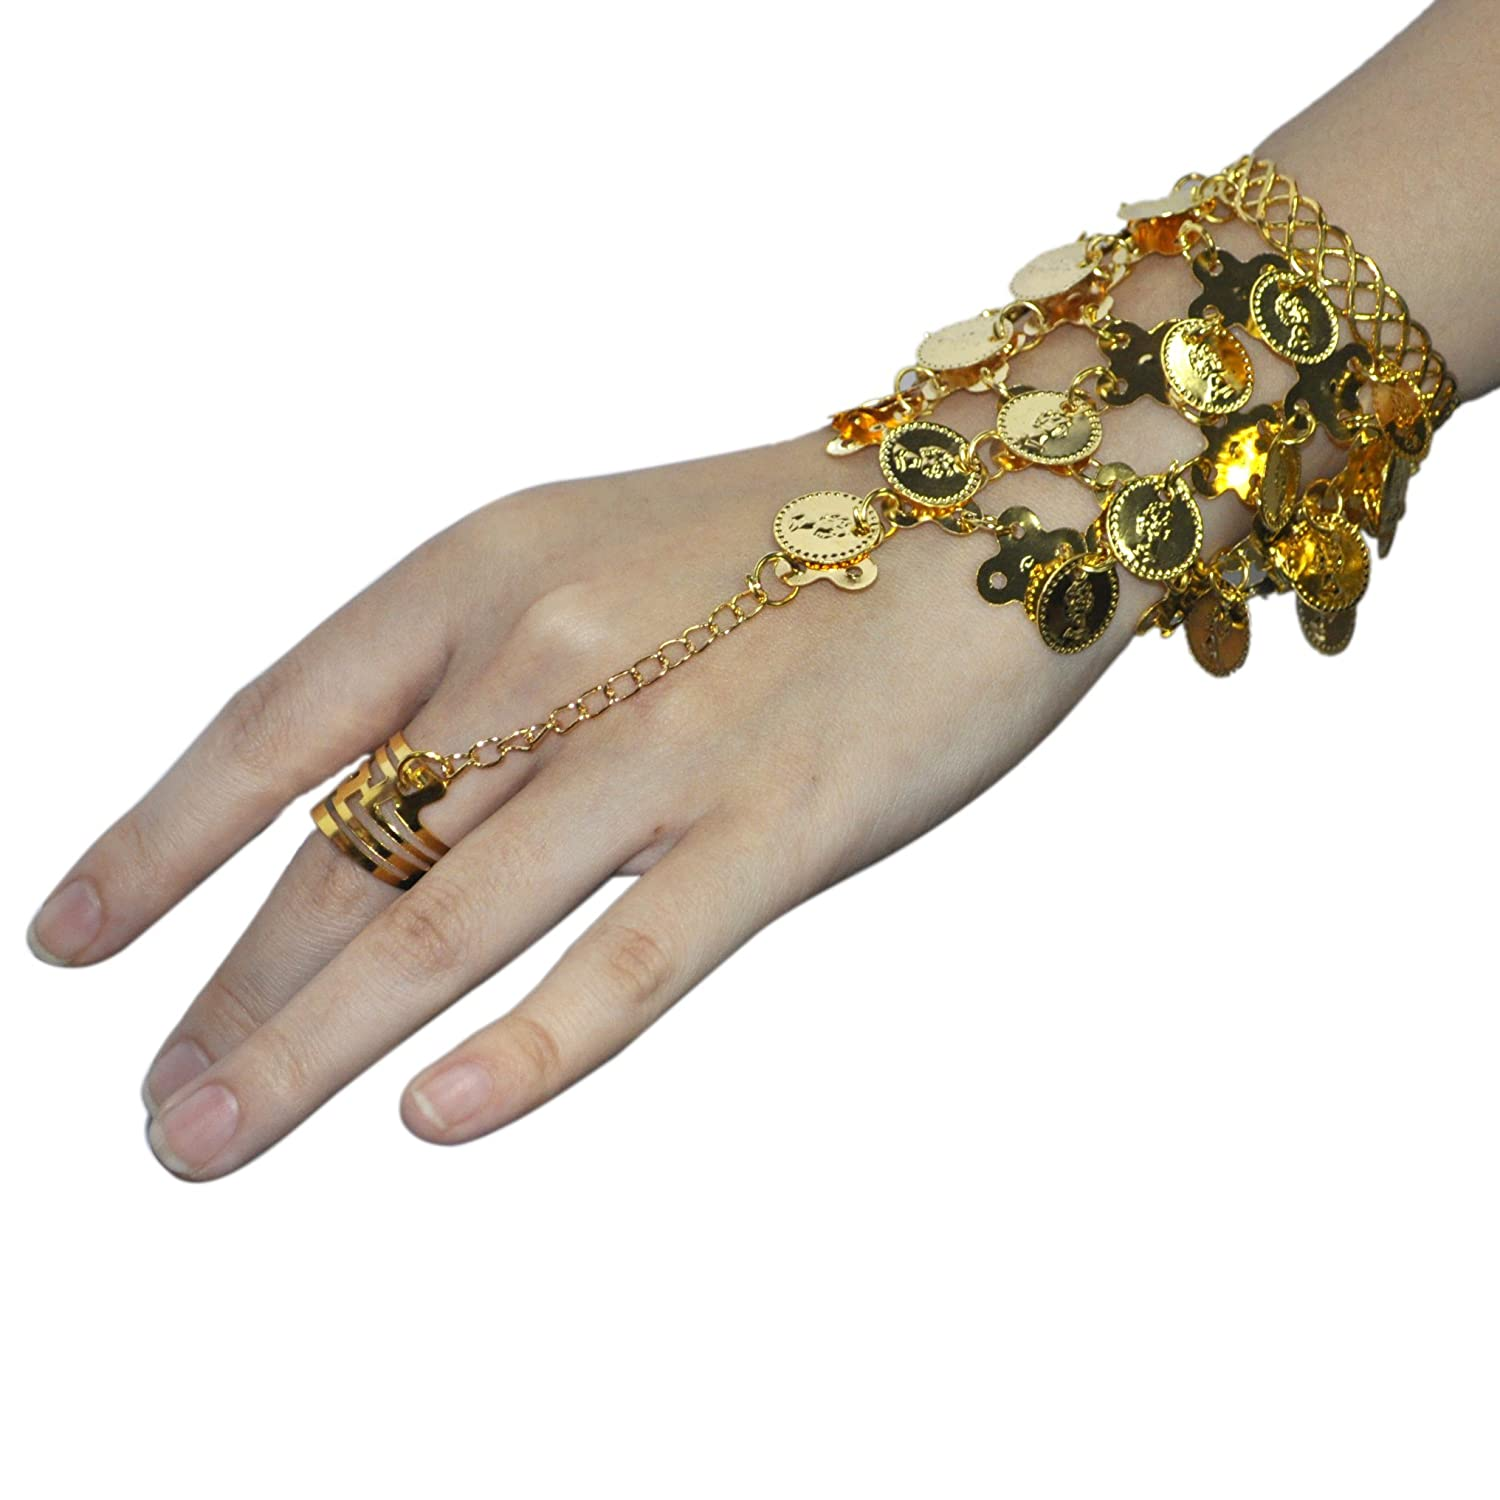 BellyLady Belly Dance Gold Triangle Bracelet Gypsy Jewelry, Gift Idea AQDH-DF10910